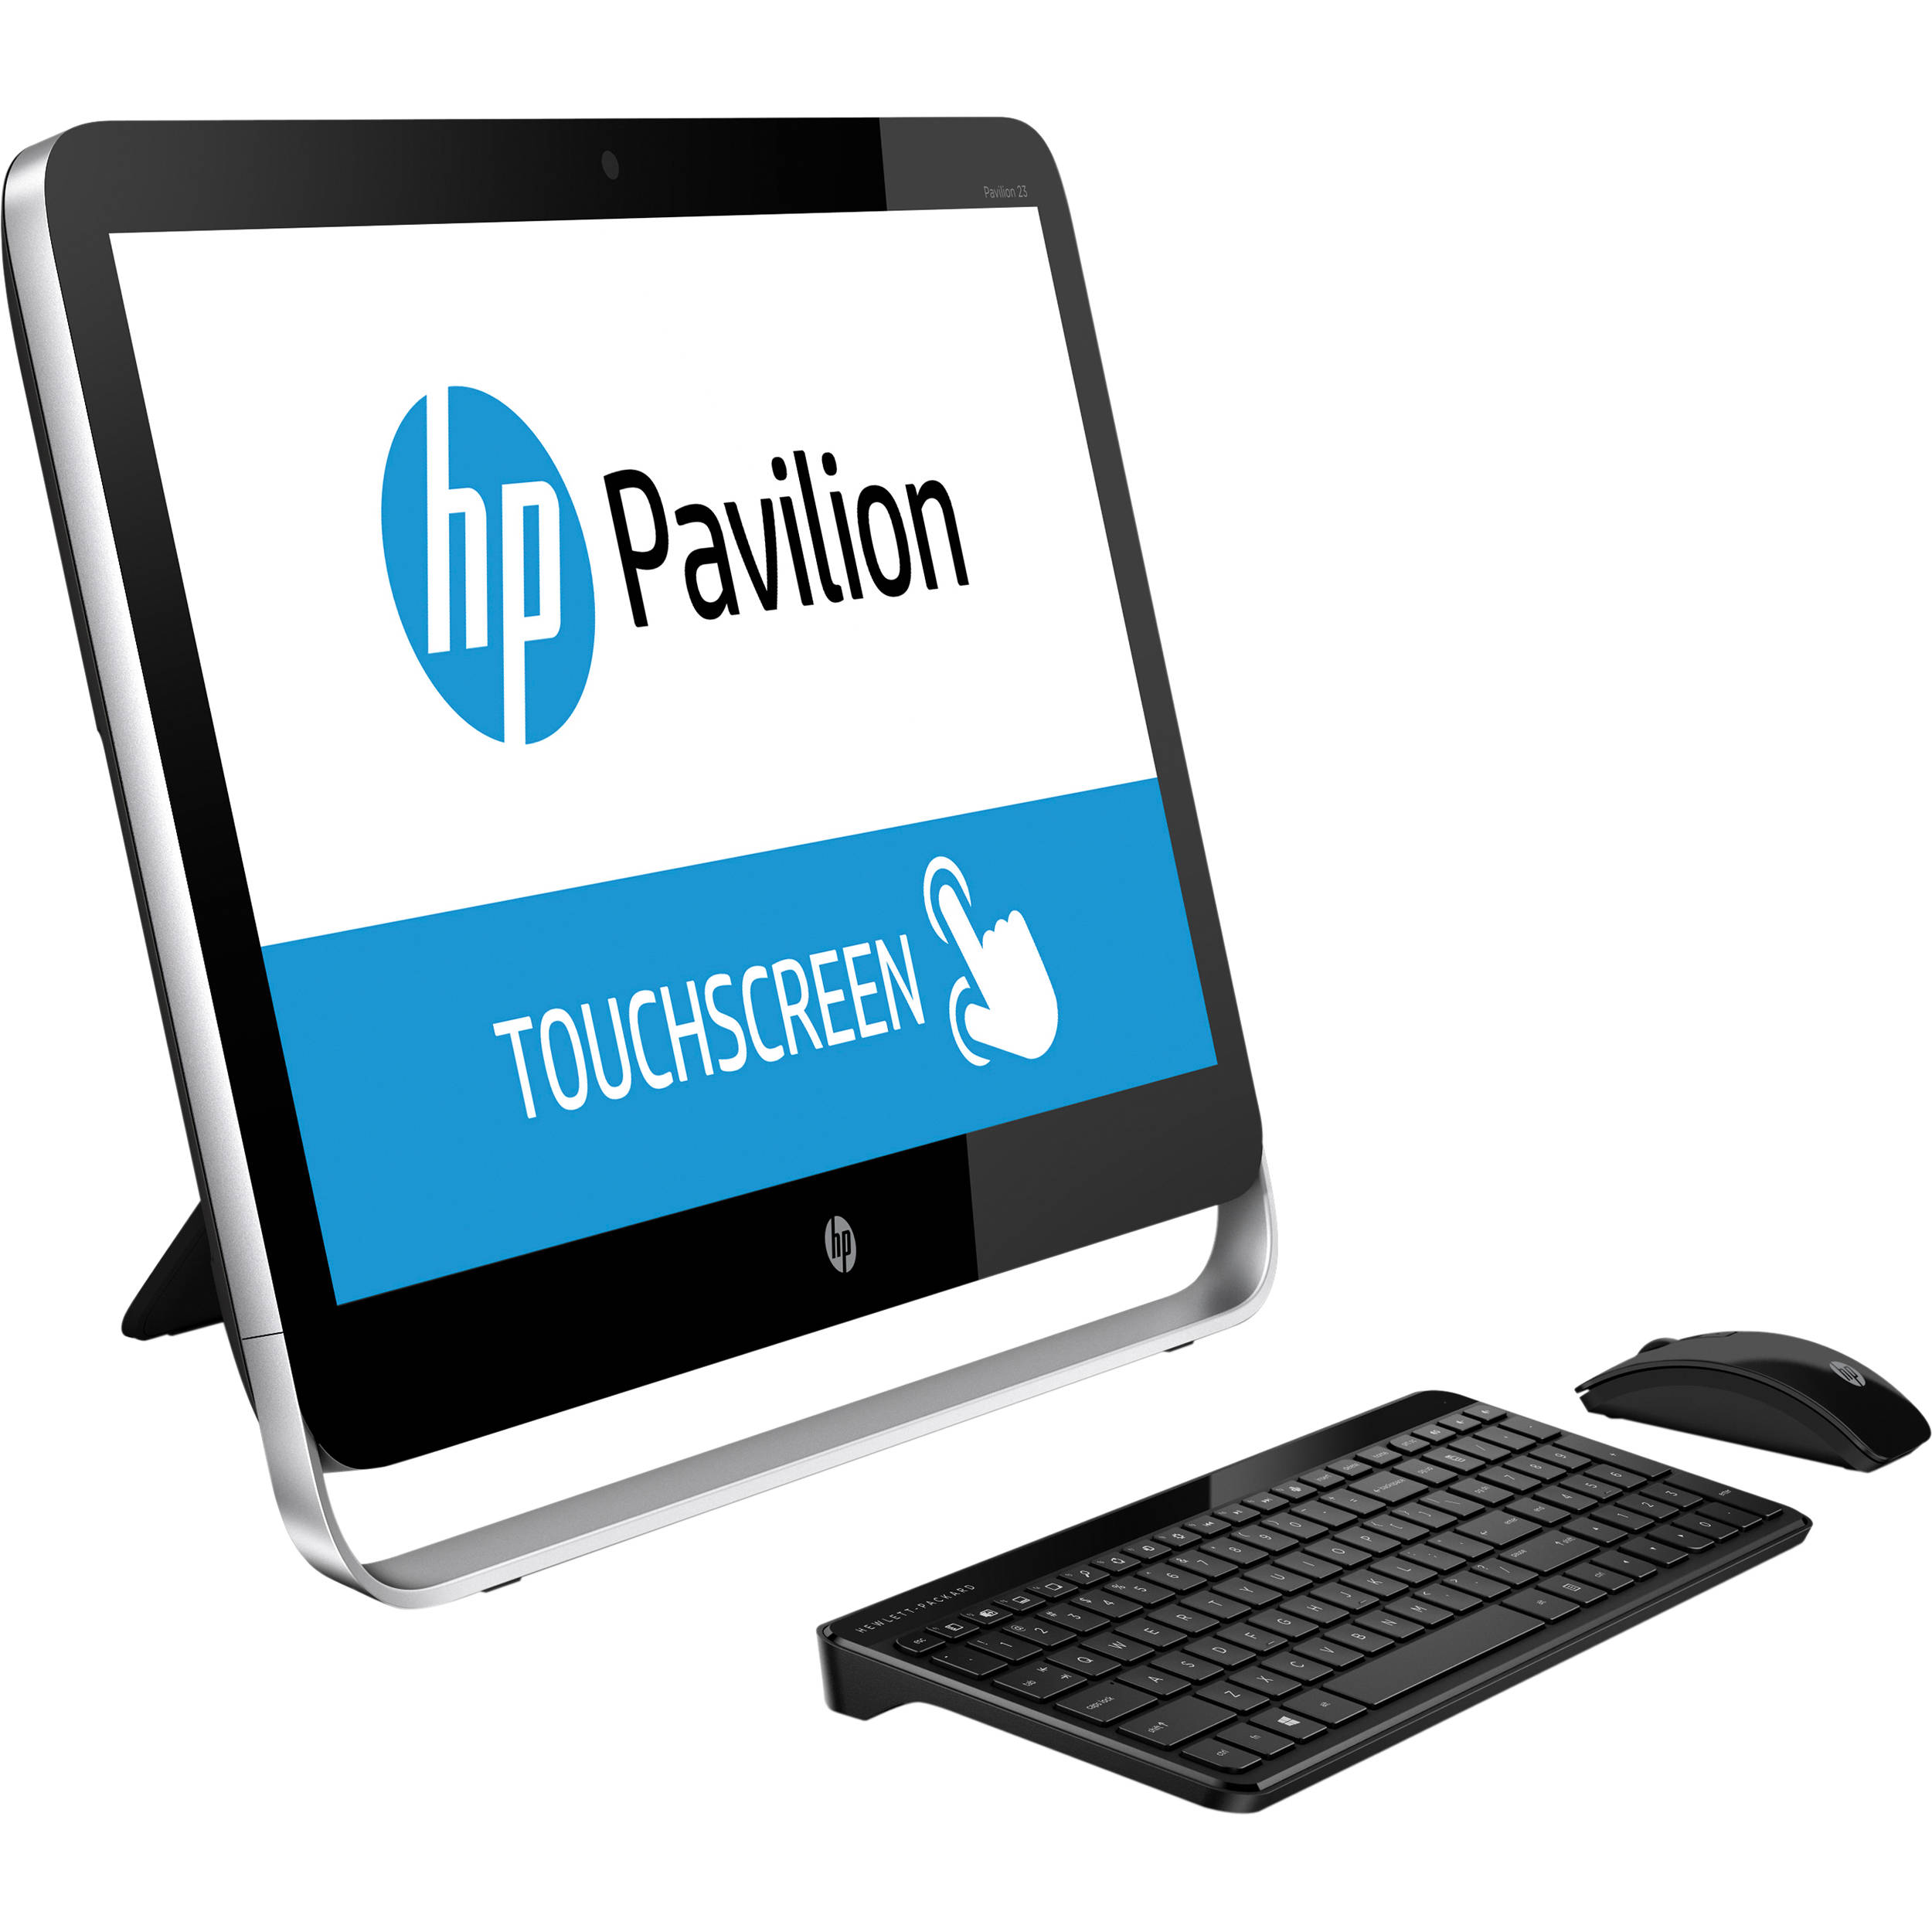 "HP Pavilion All-in-One 23-p110 Touchscreen 23"" Desktop Computer"